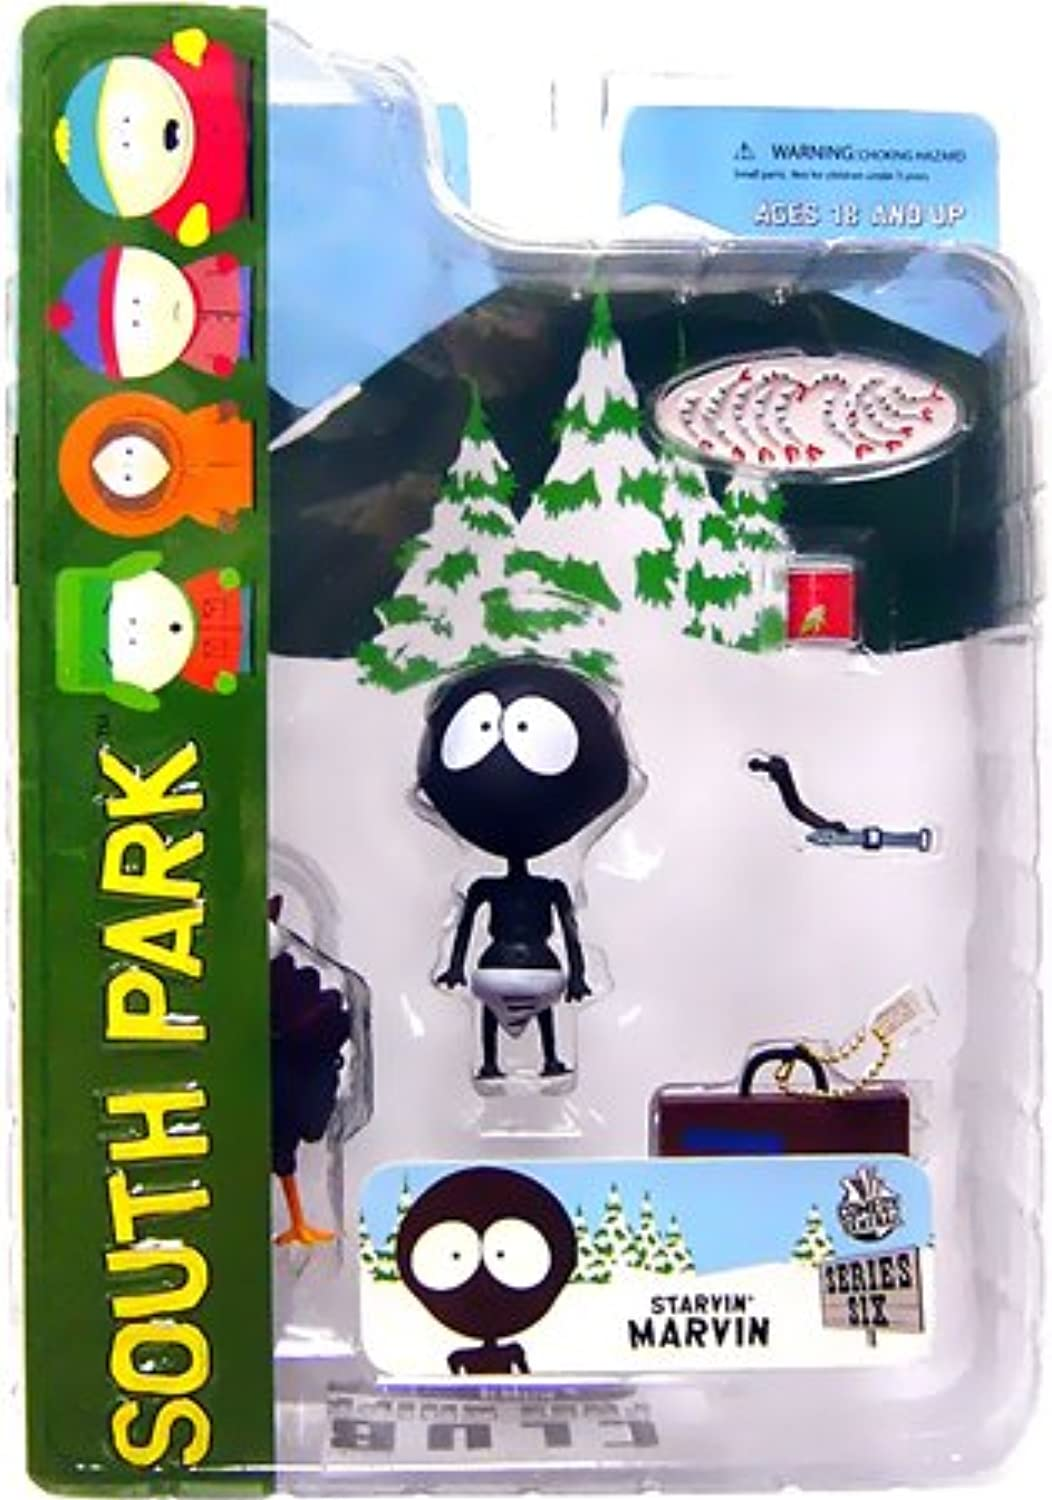 Mezco Toyz South Park Series 6 Action Figure Starvin Marvin